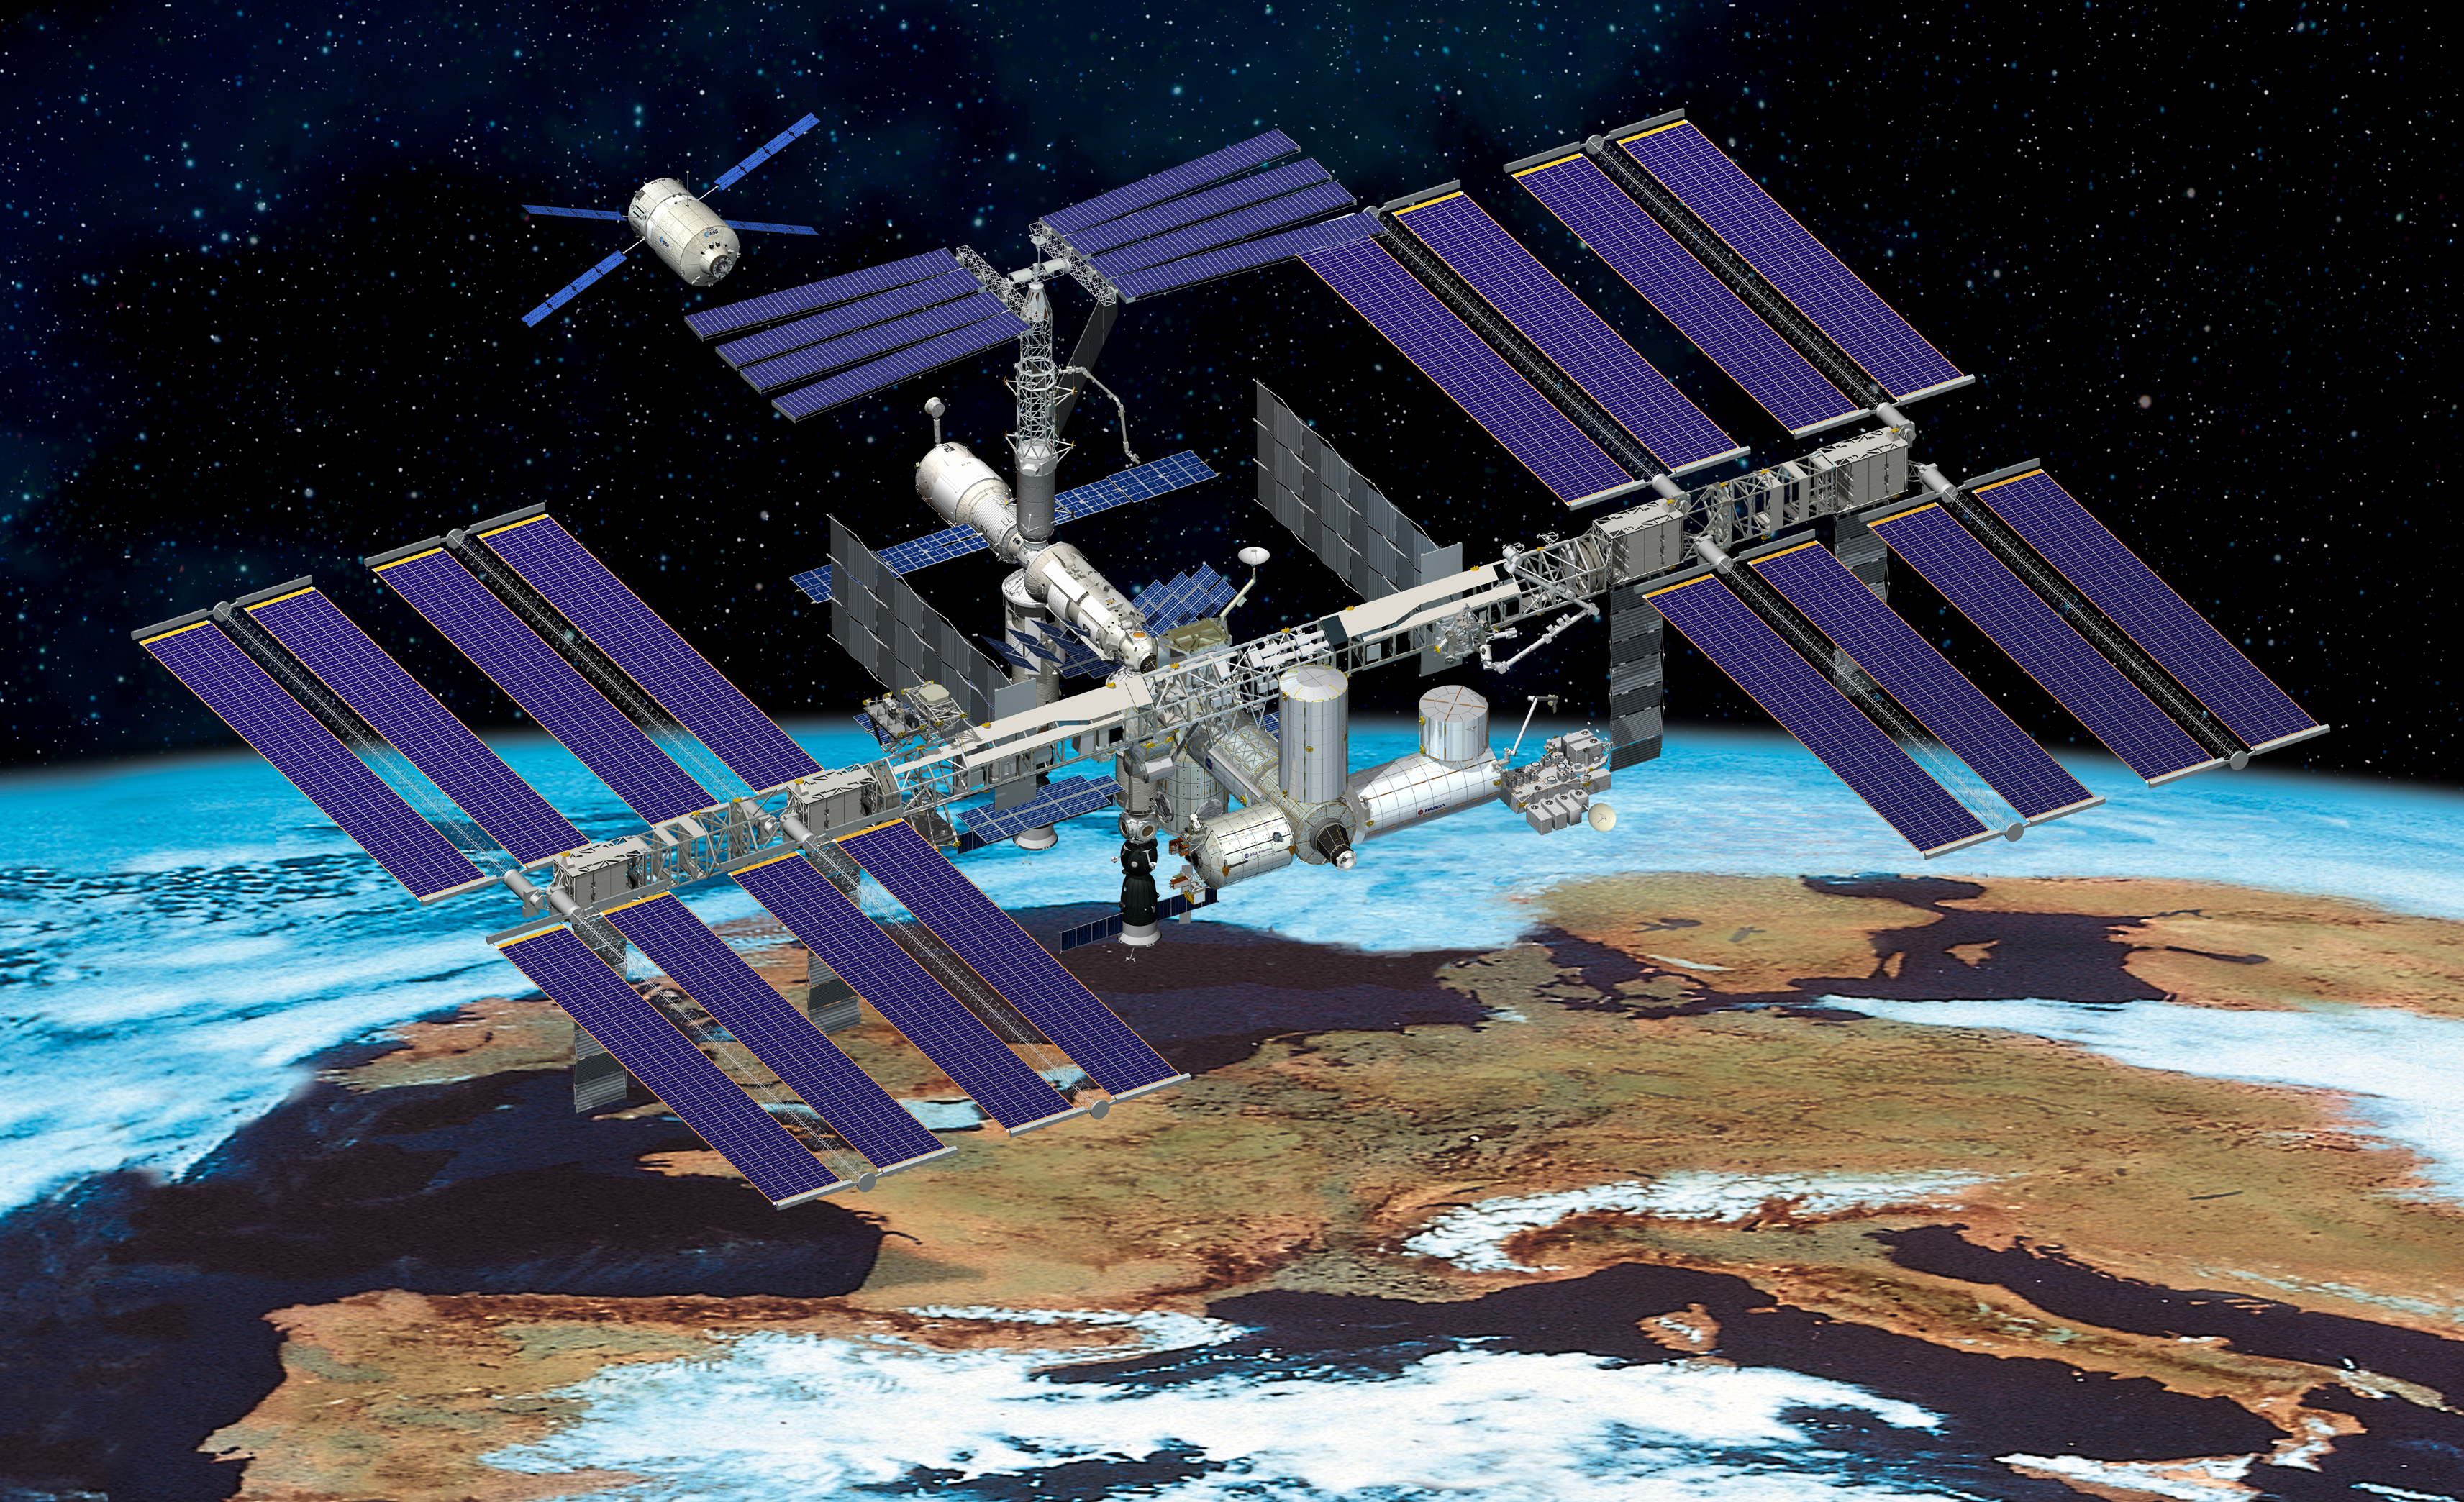 solar powered space station - photo #8